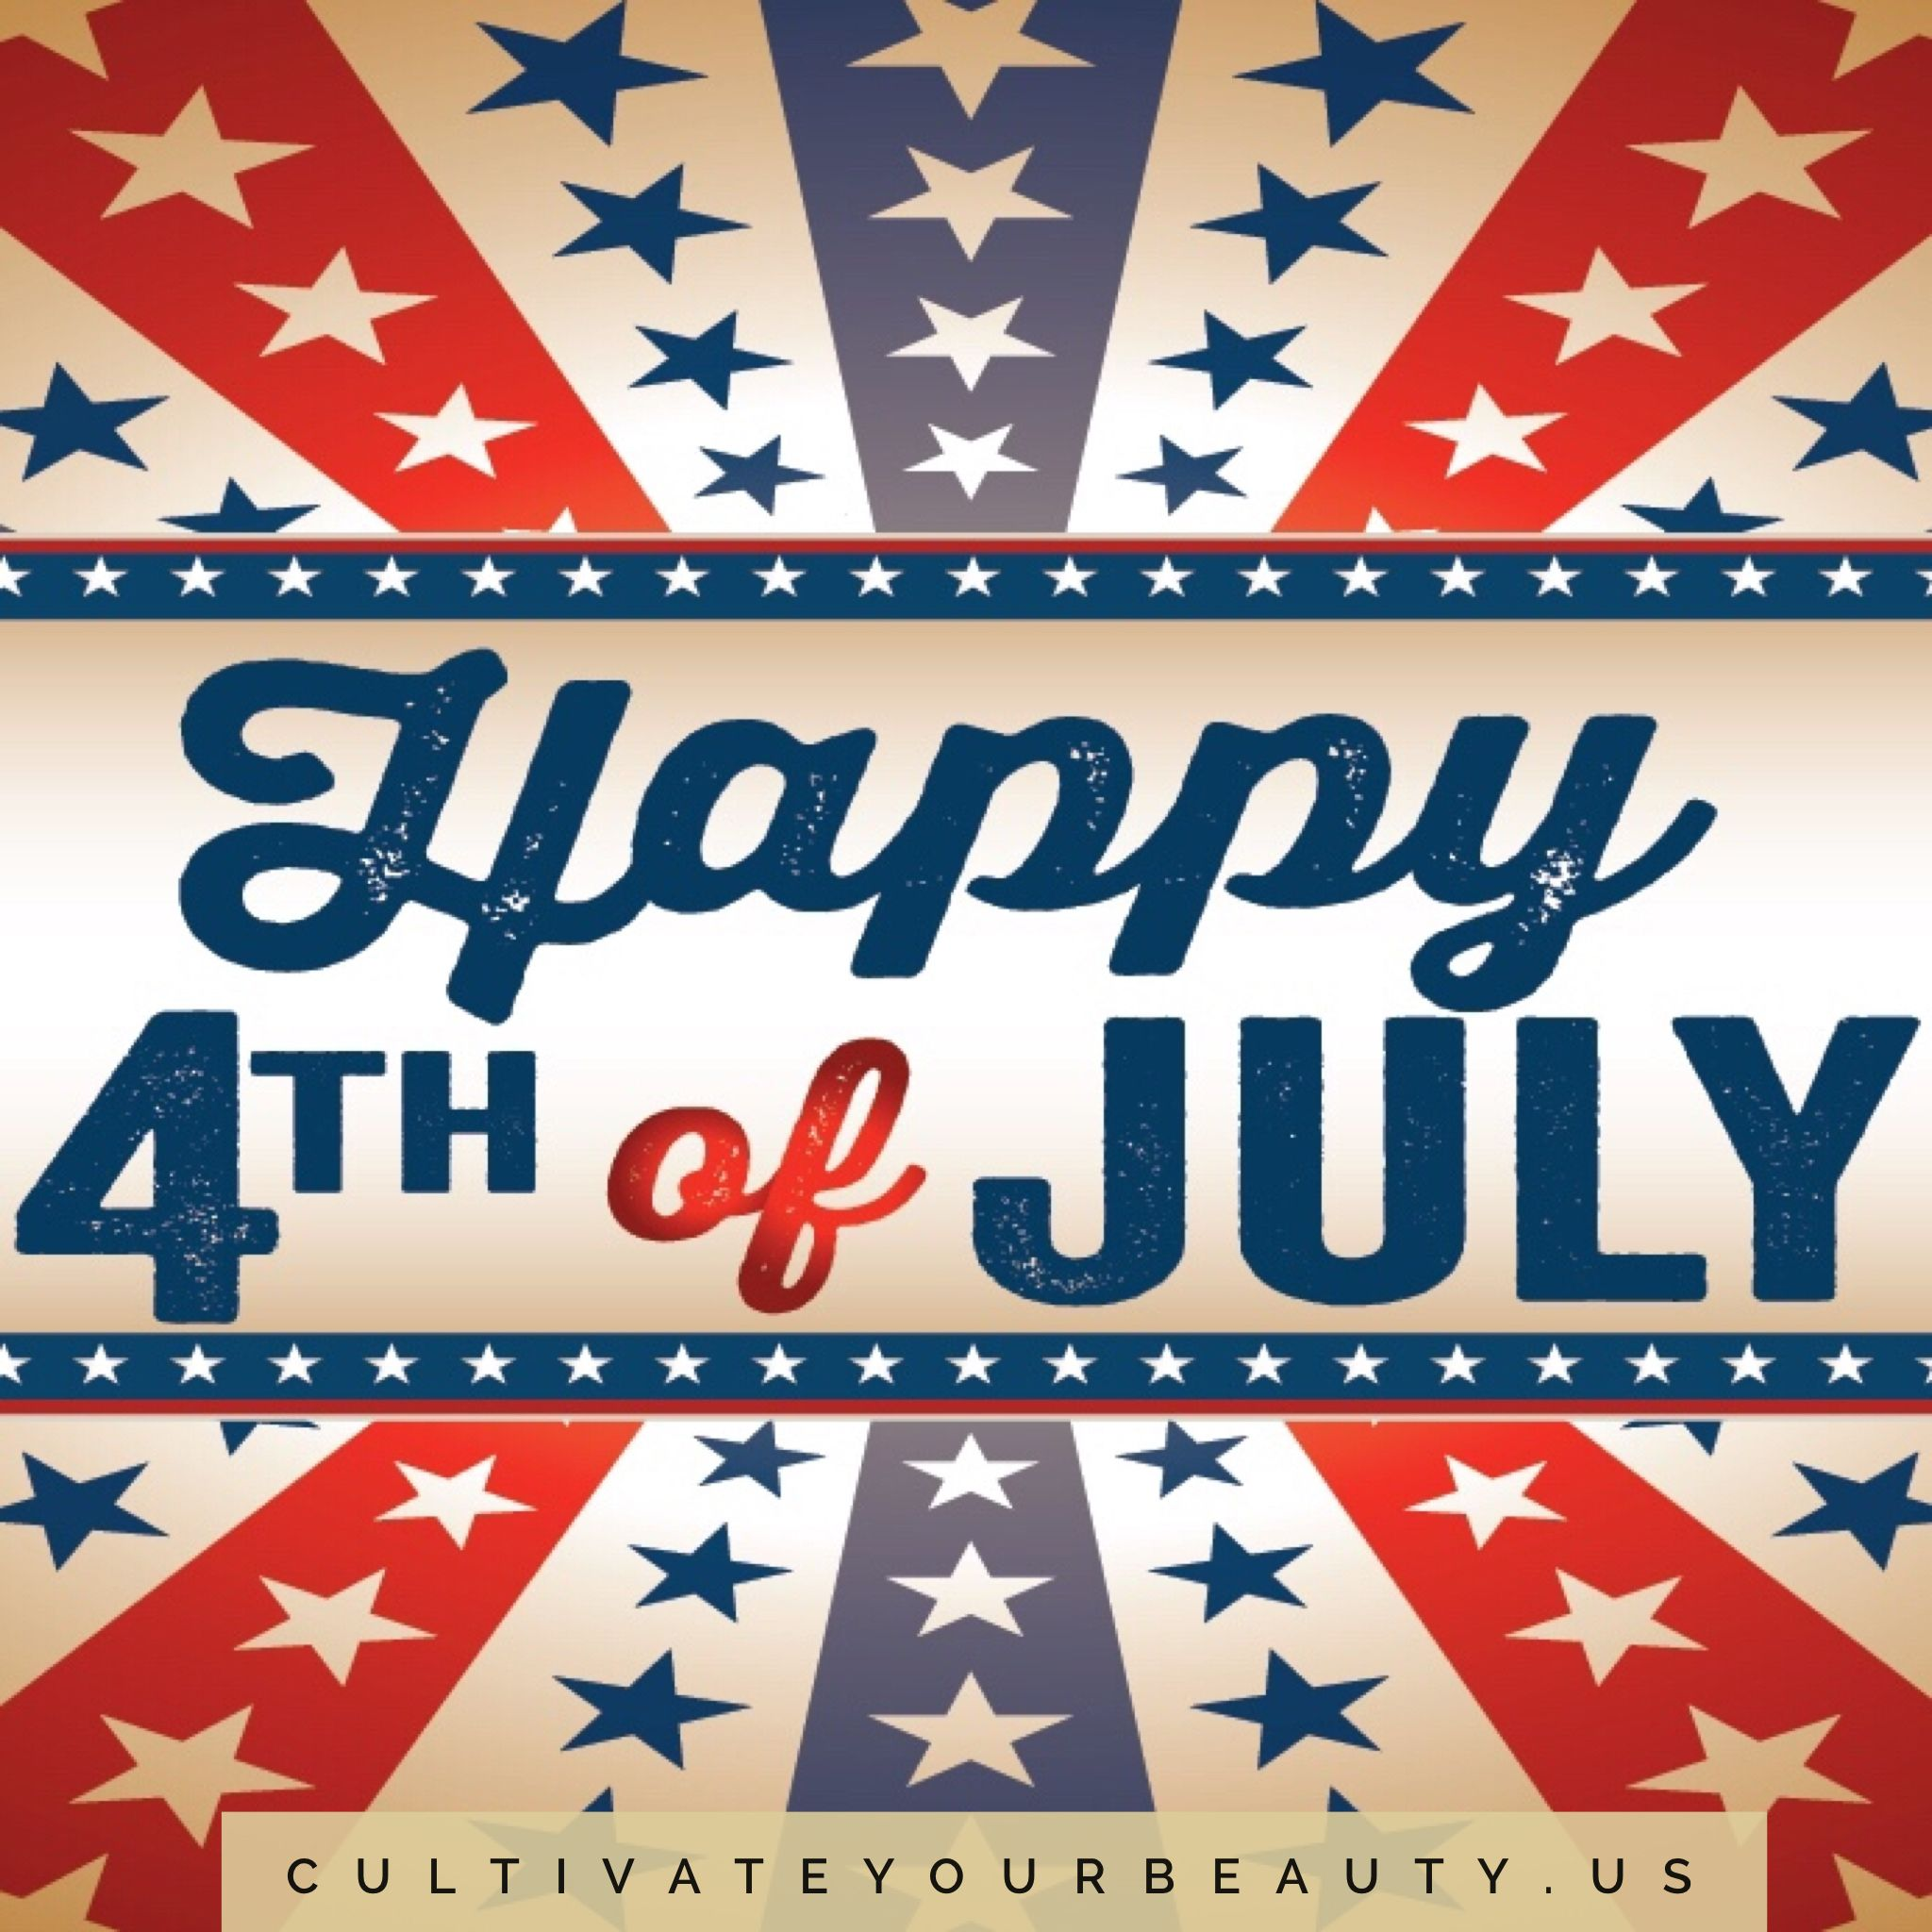 Wishing everyone a safe and happy Independence Day